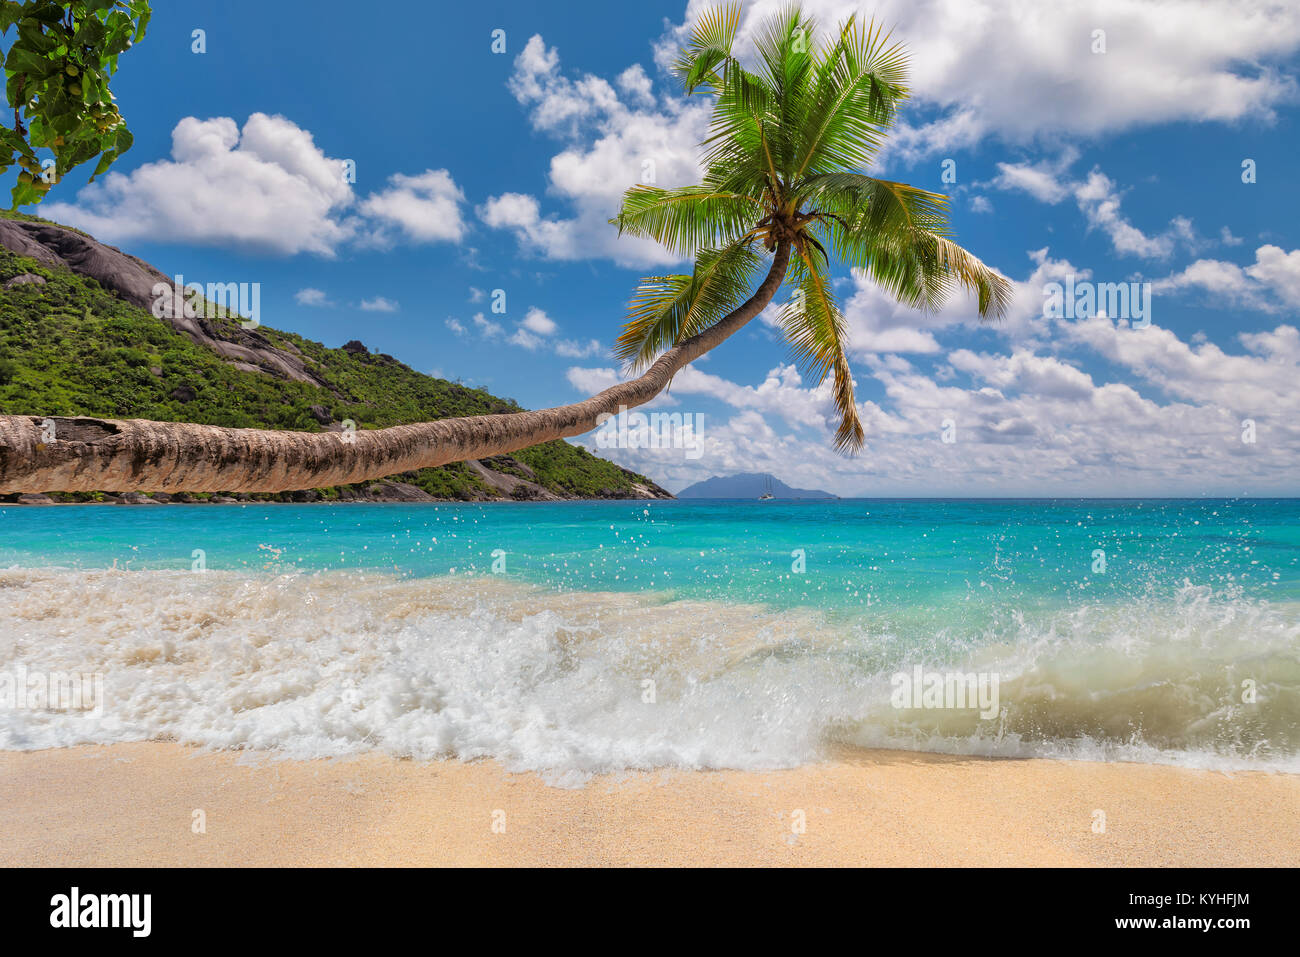 La plage de sable tropicale avec palmiers. Photo Stock